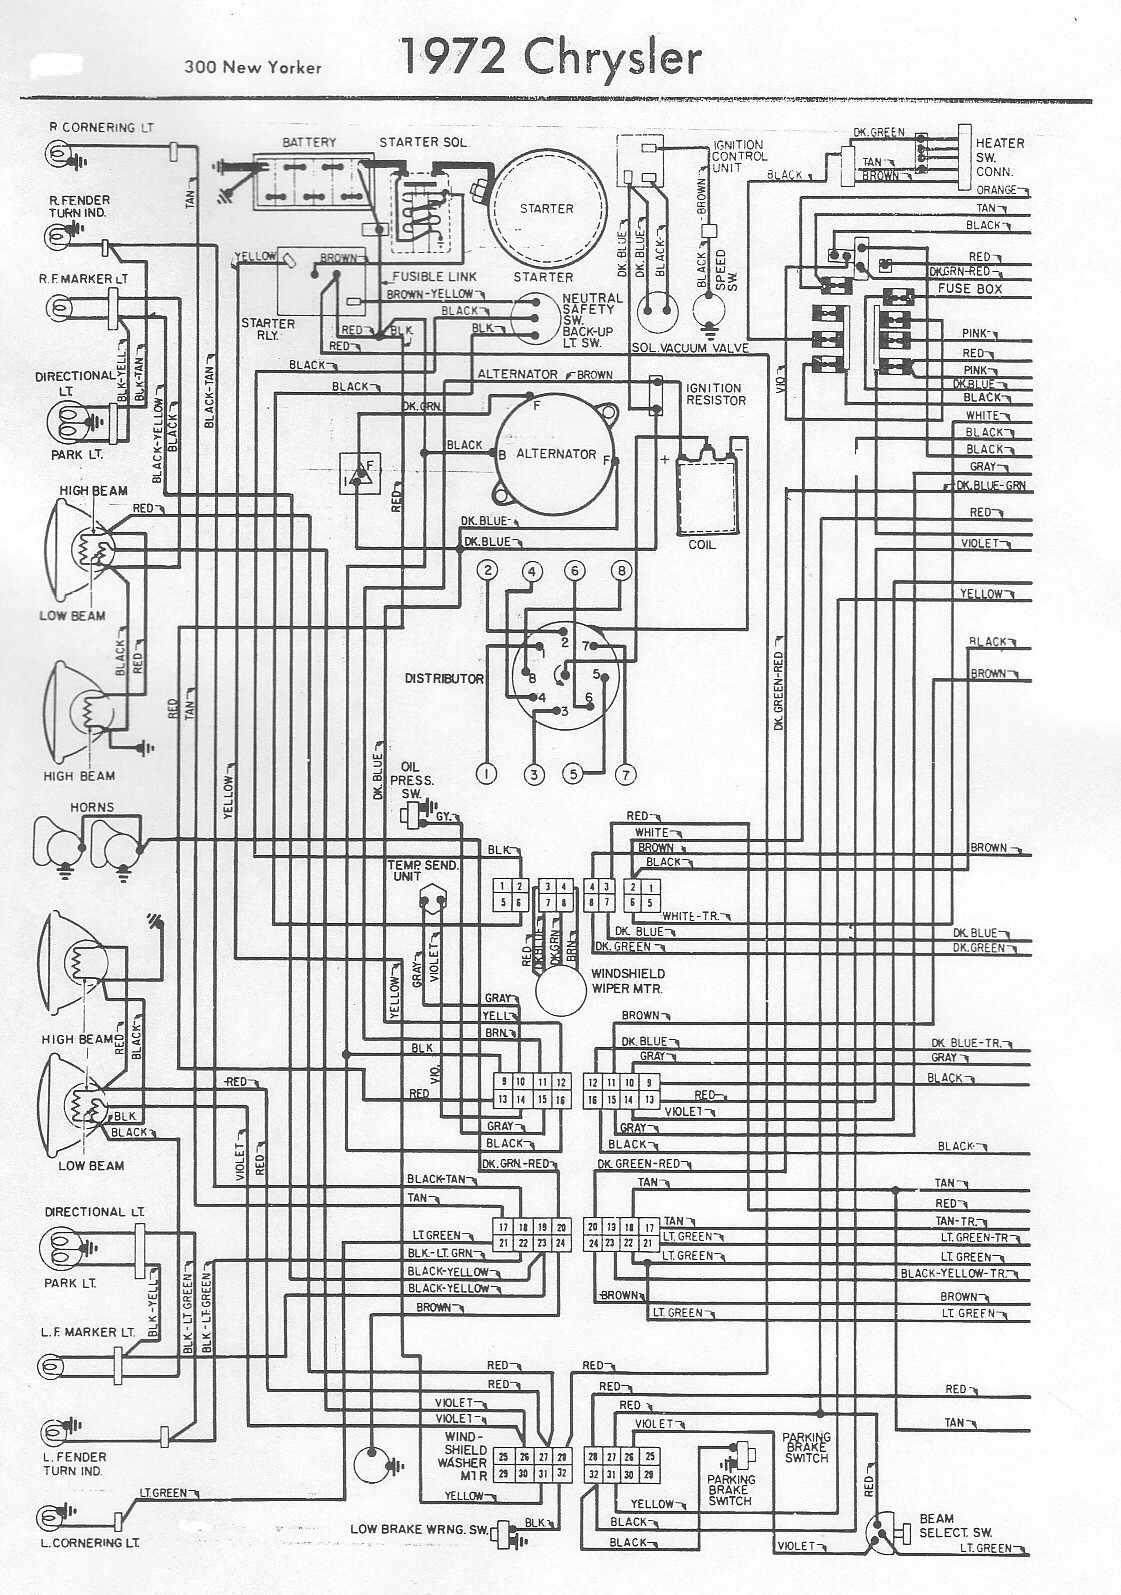 Chrysler Voyager Wiring Diagrams Download: Chrysler - Car Manuals Wiring  Diagrams PDF 6 Fault Codes